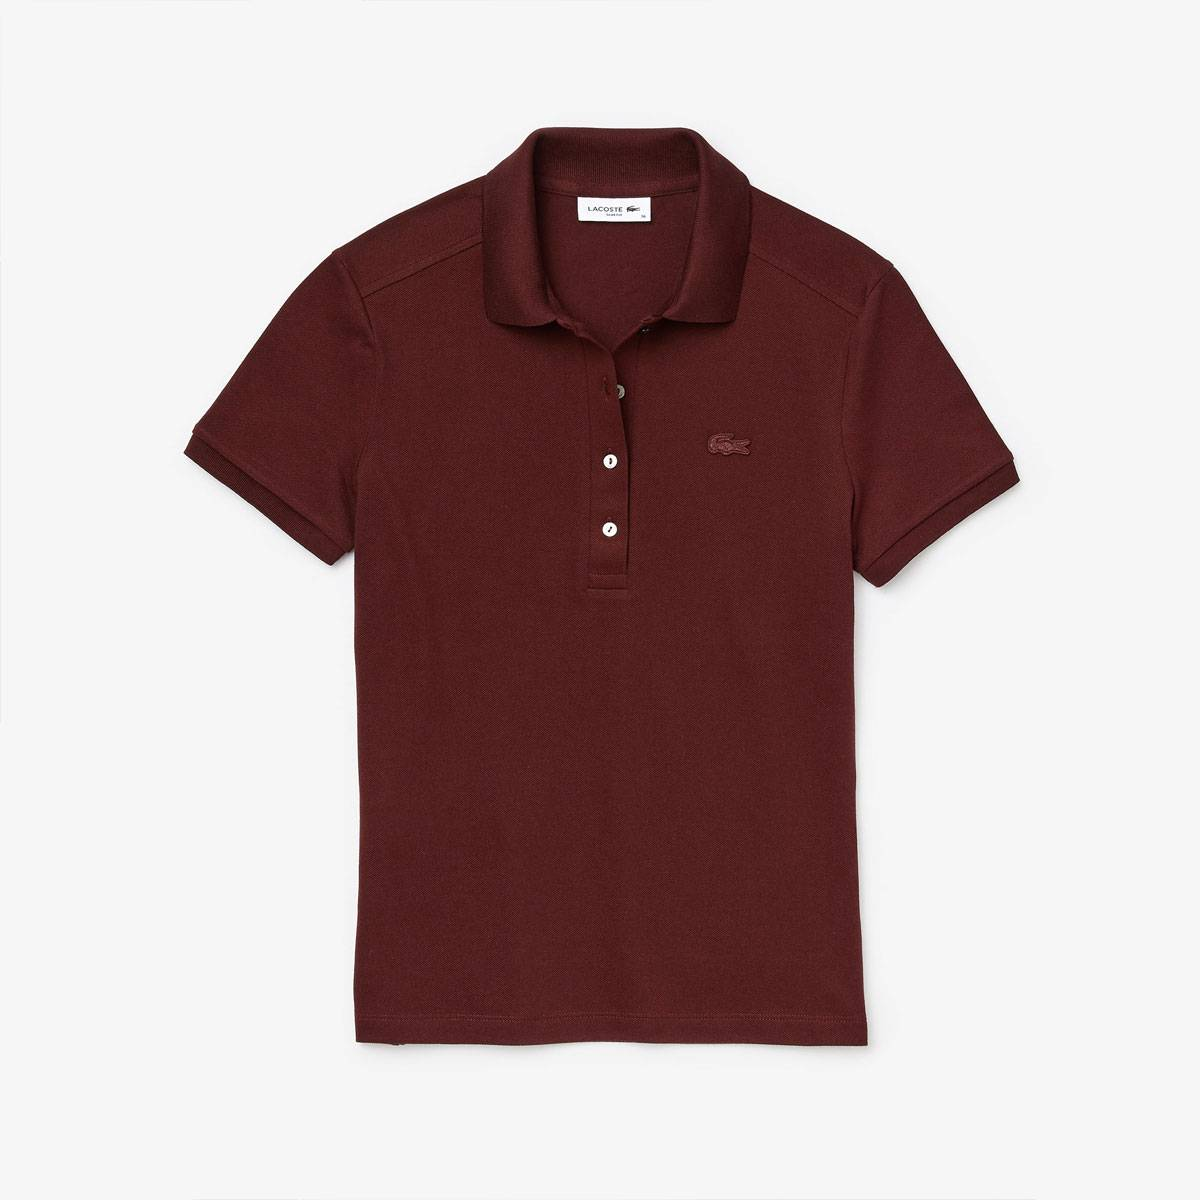 Lacoste Polo Donna in Cotone Stretch Bordeaux 4GD - 42 - Donna